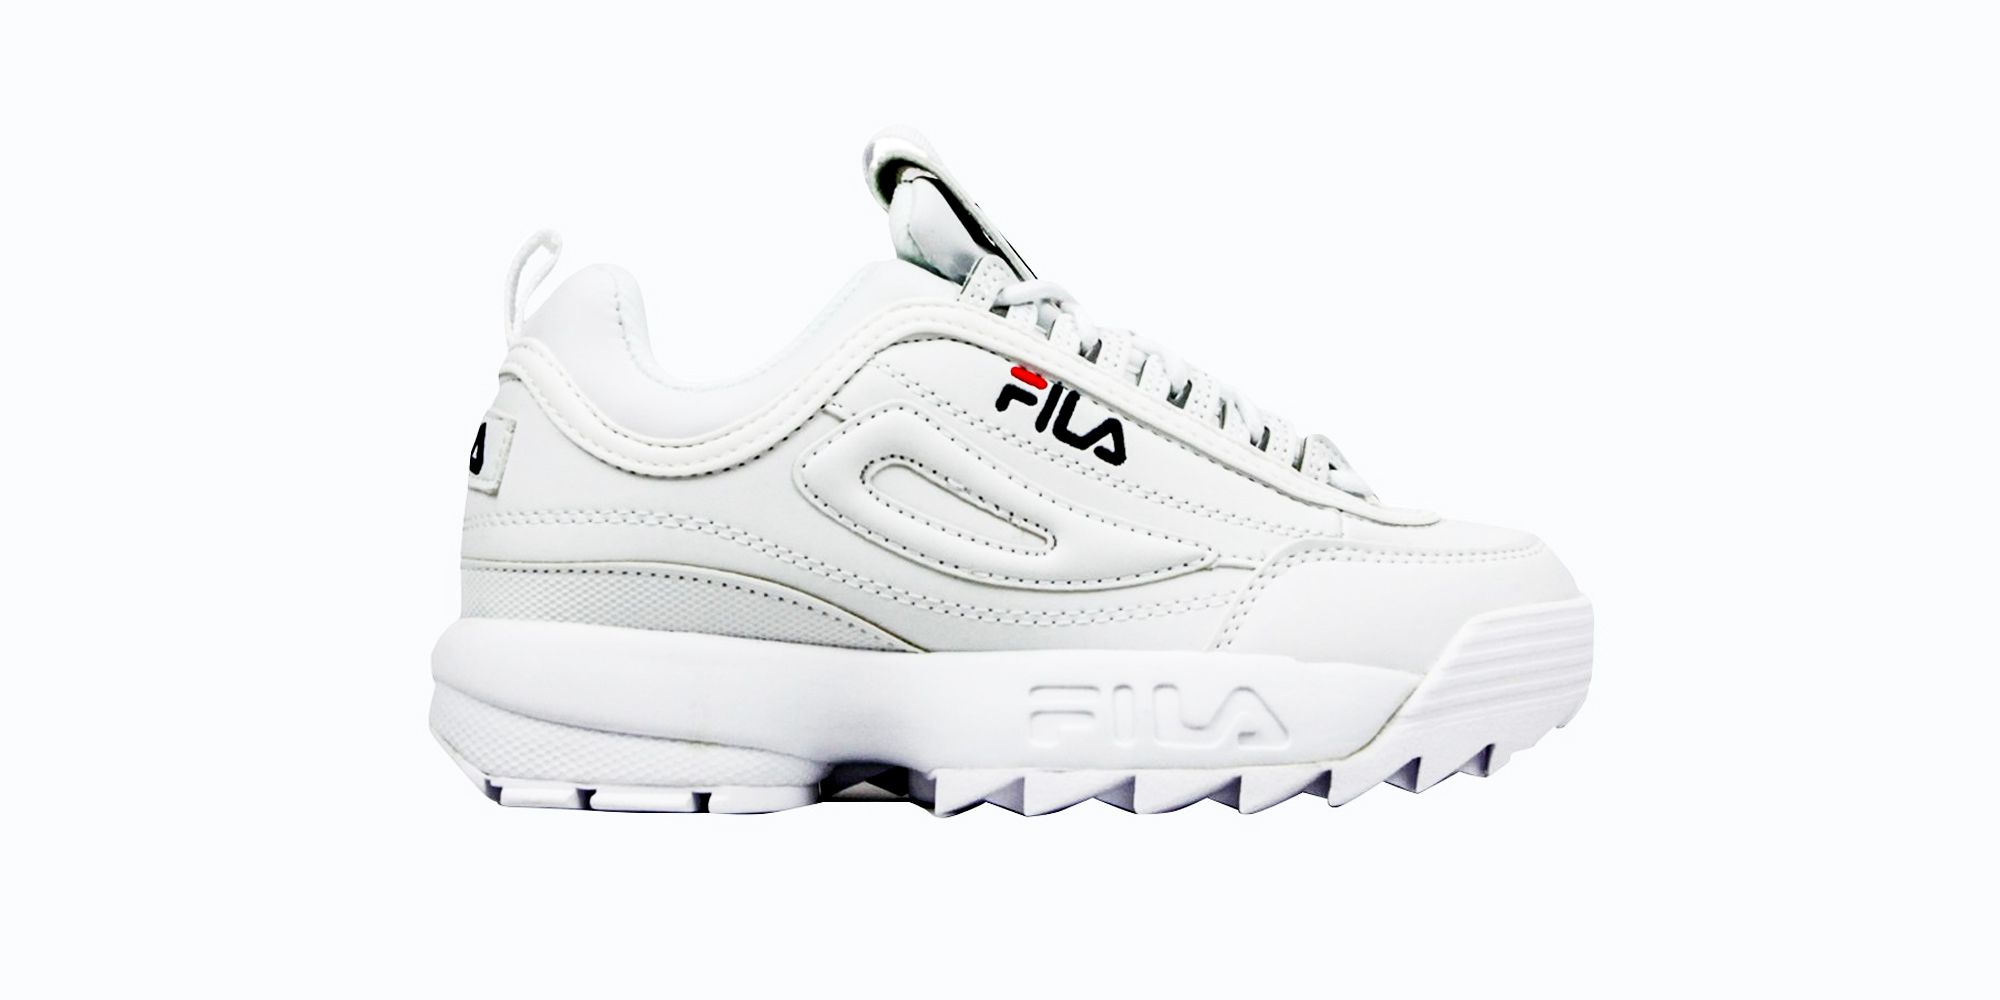 fila shoes jdsnx stock